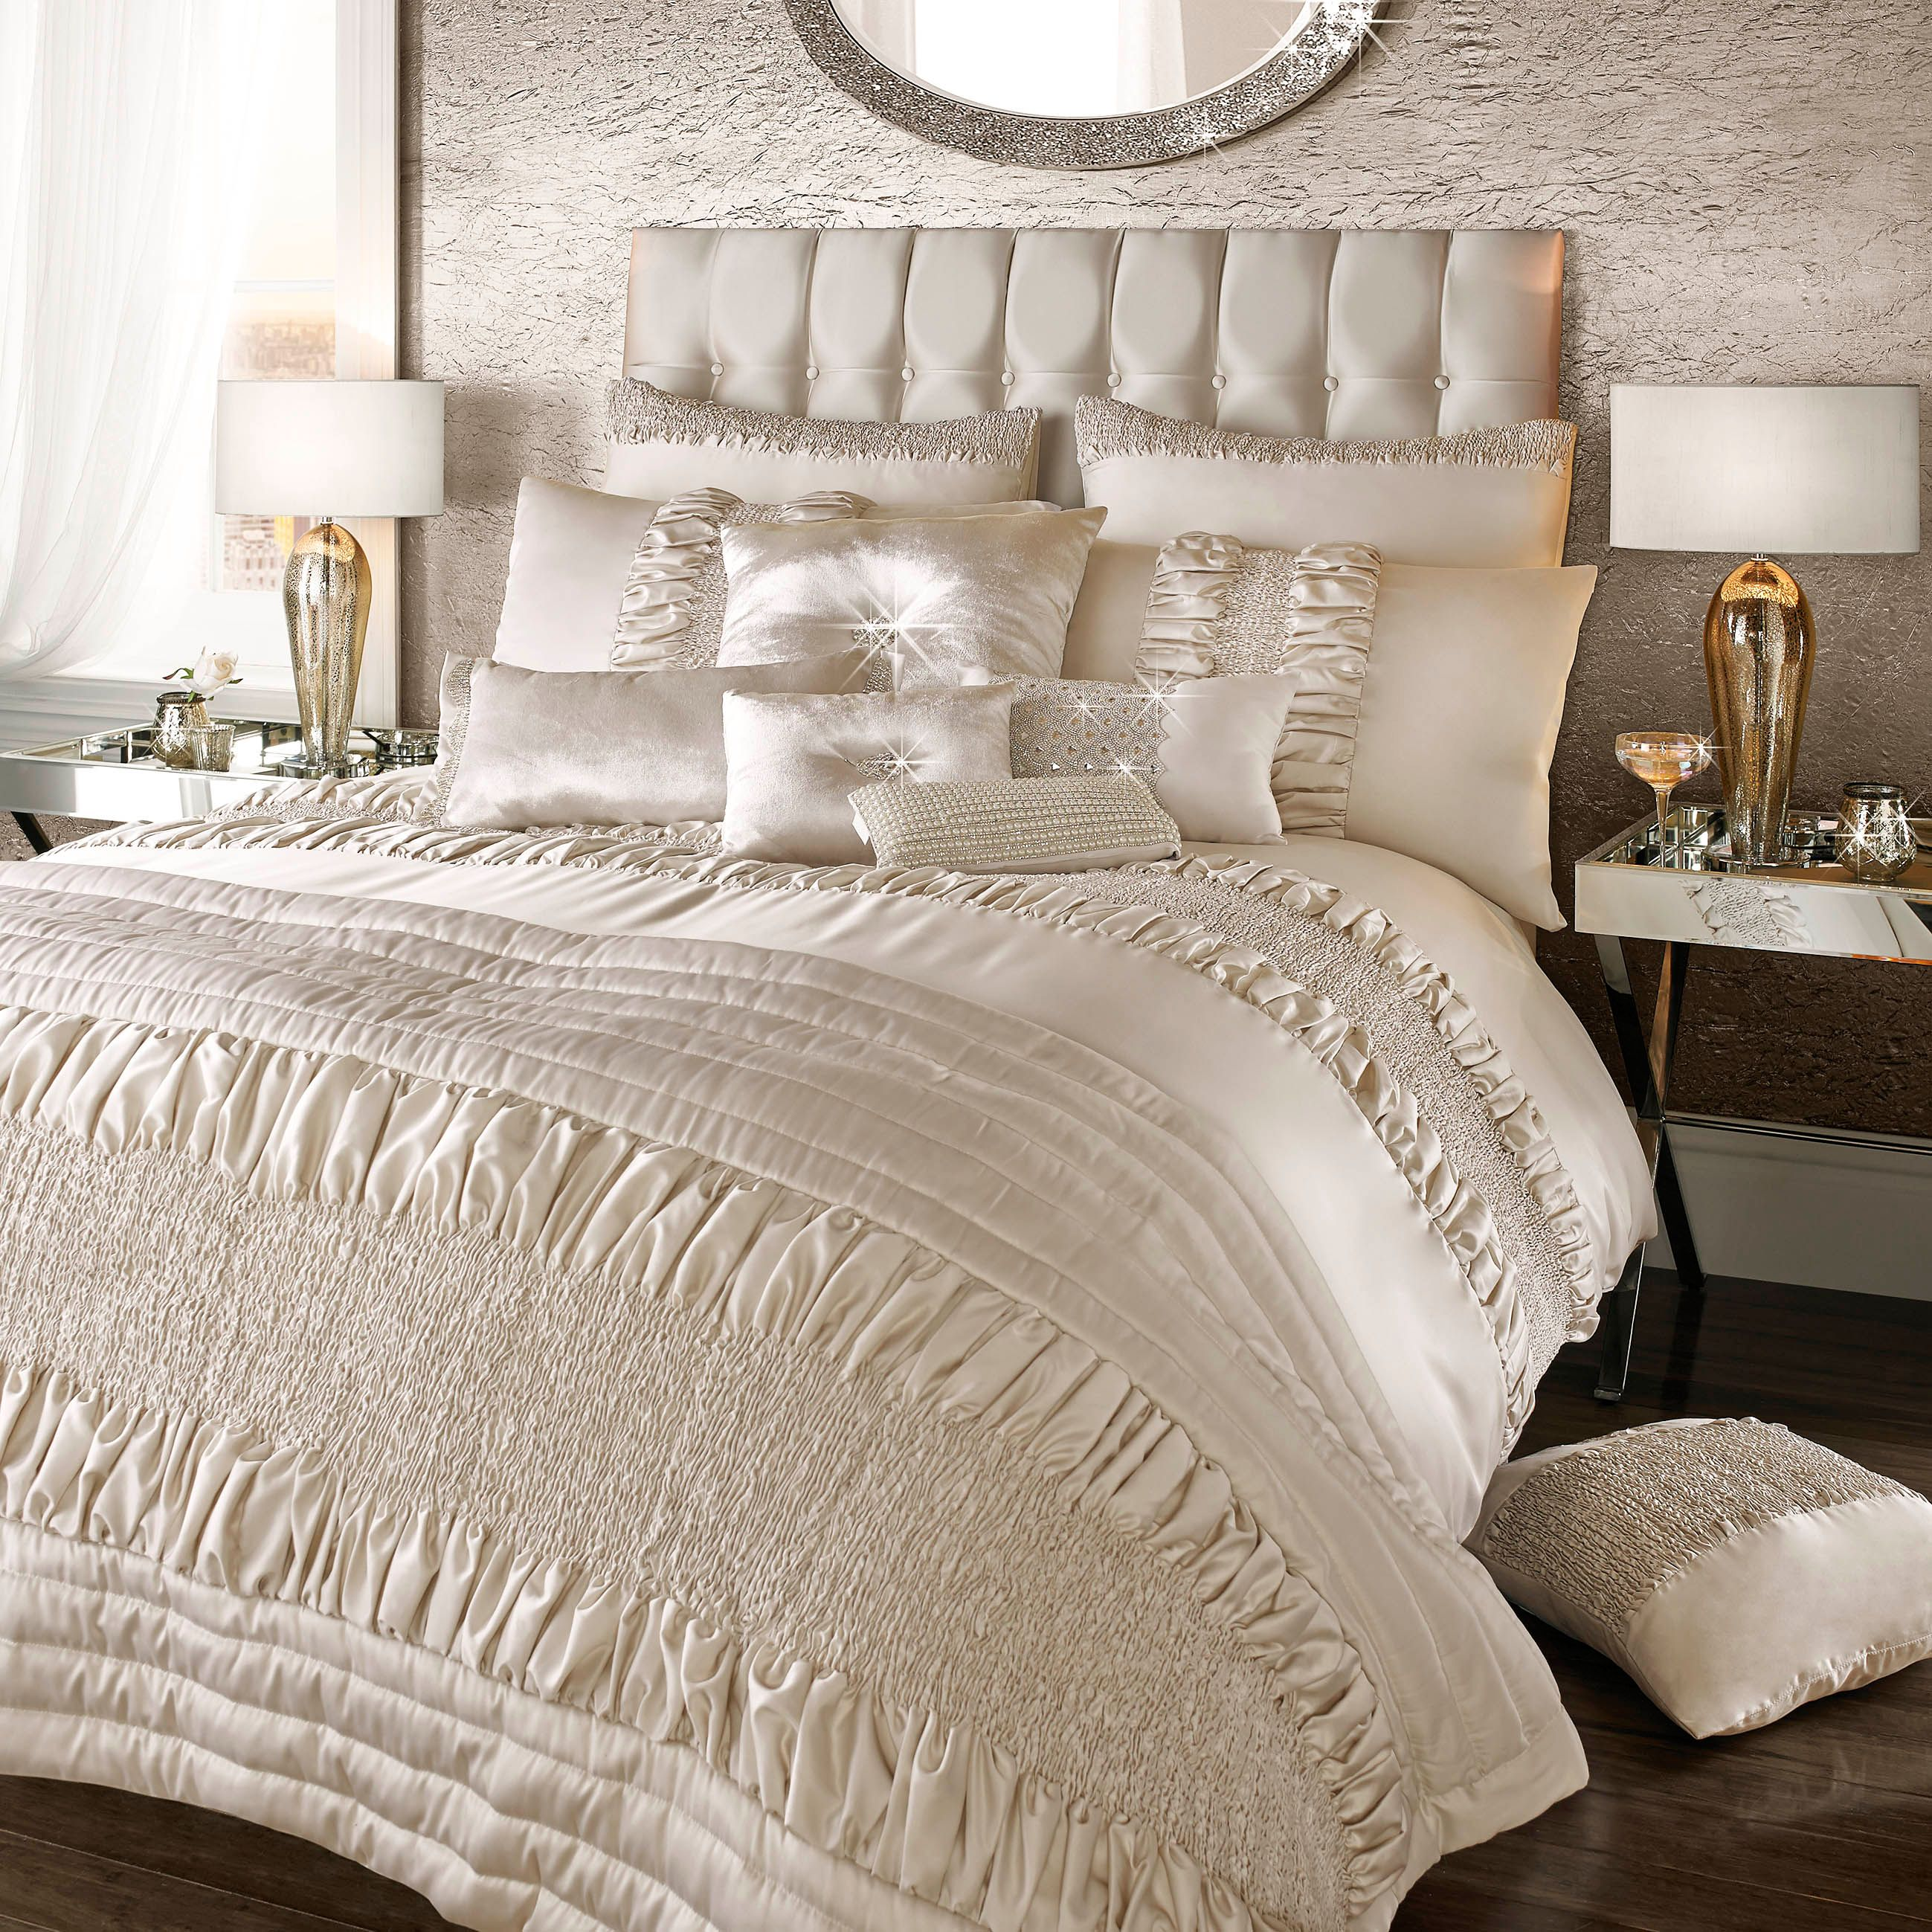 Image of Kylie Minogue Alessandra duvet cover